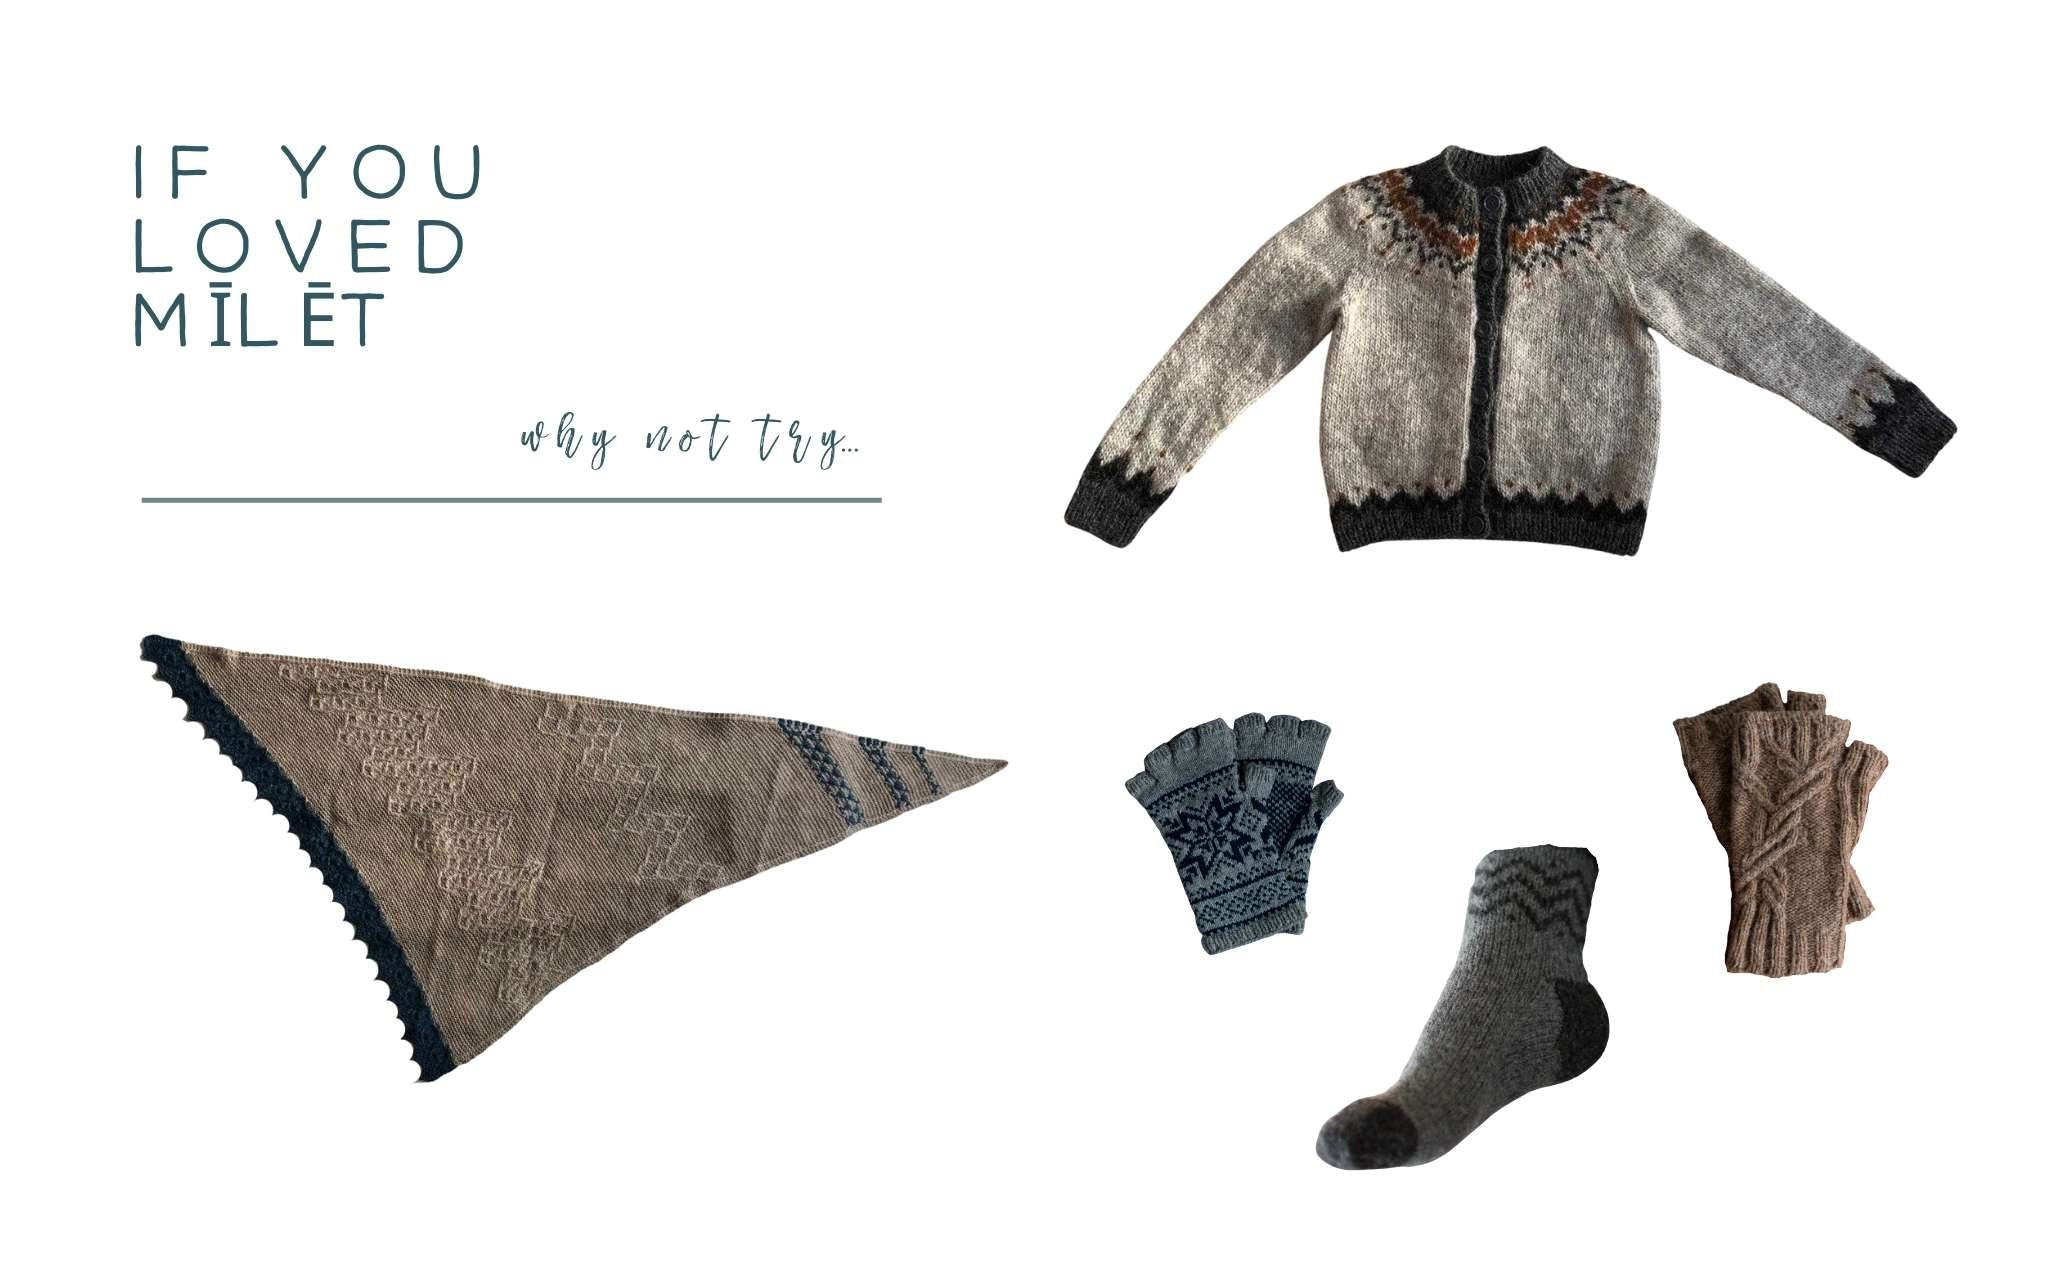 Images of a shawl, cardigan, socks and mittens laid flat on a white background.